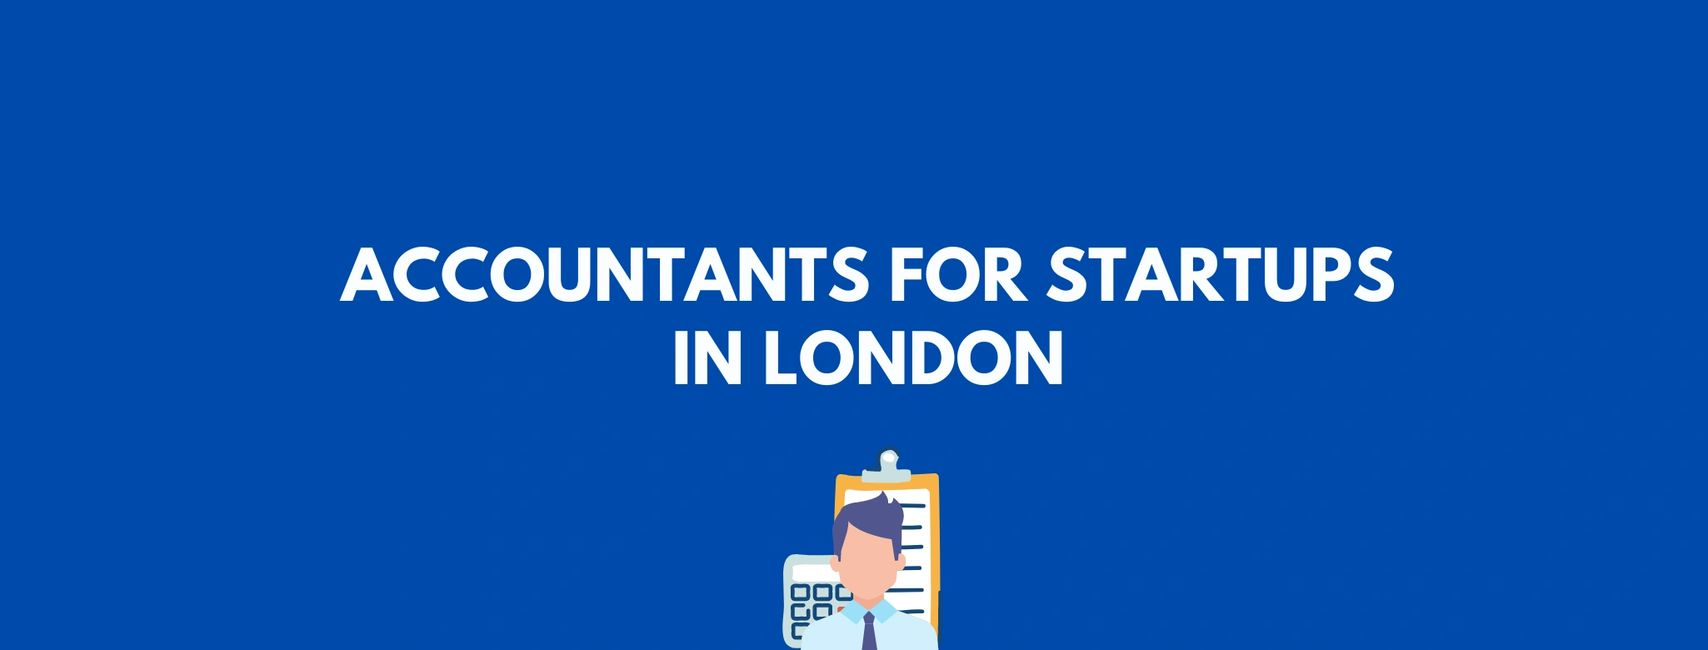 Accountants for Startups in London